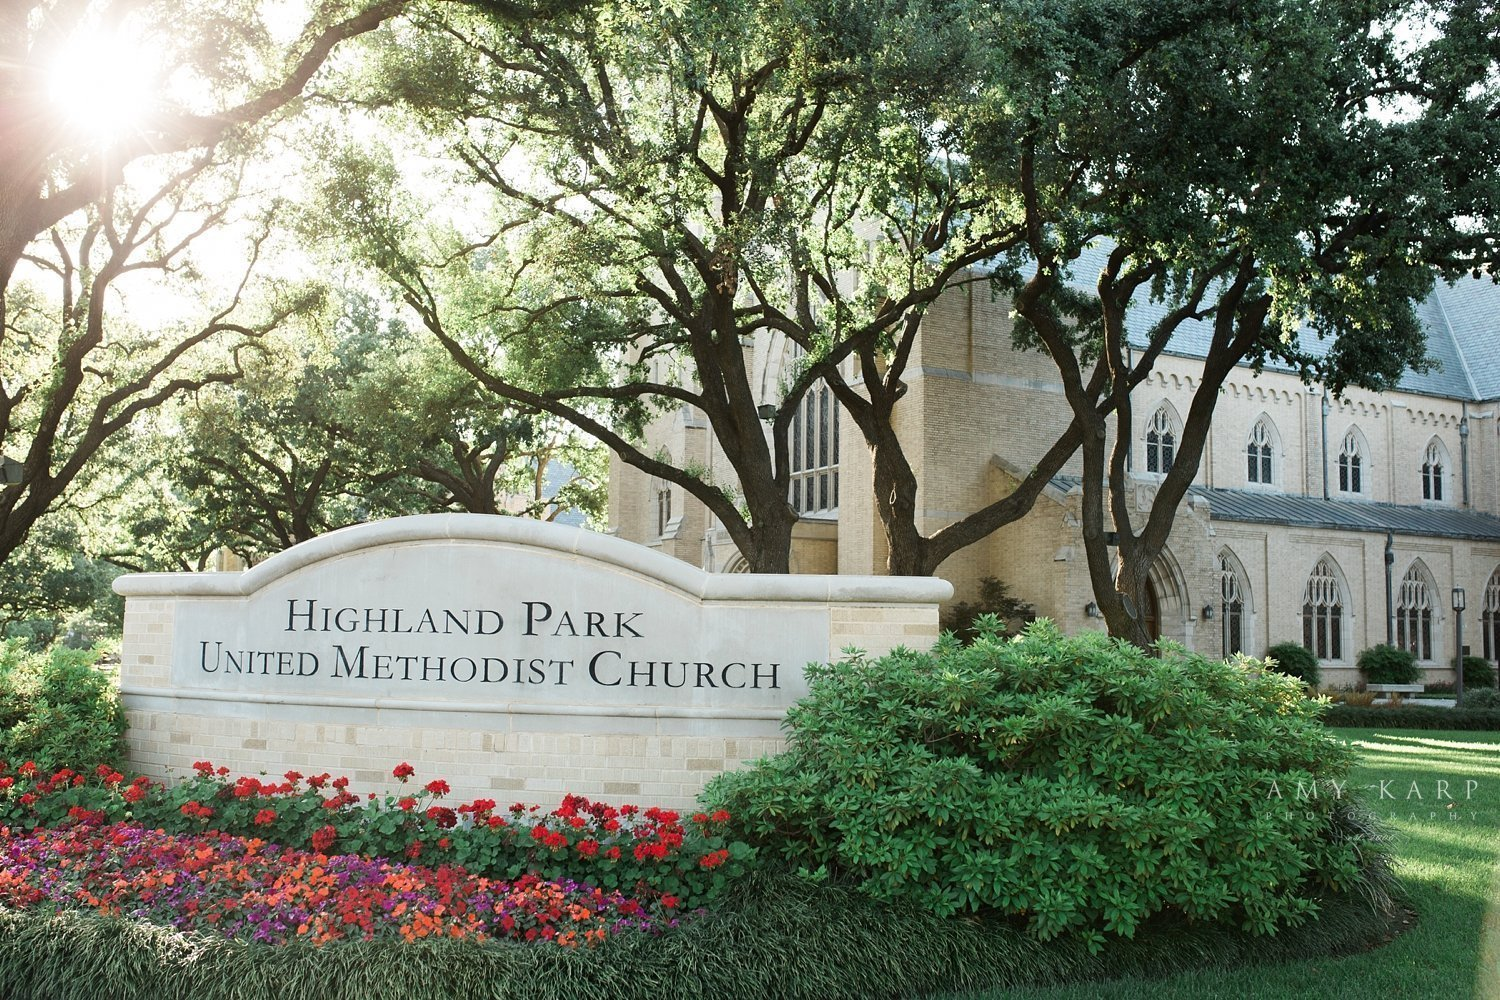 dallas-wedding-dcc-highland-park-hpumc-amanda-jm-07